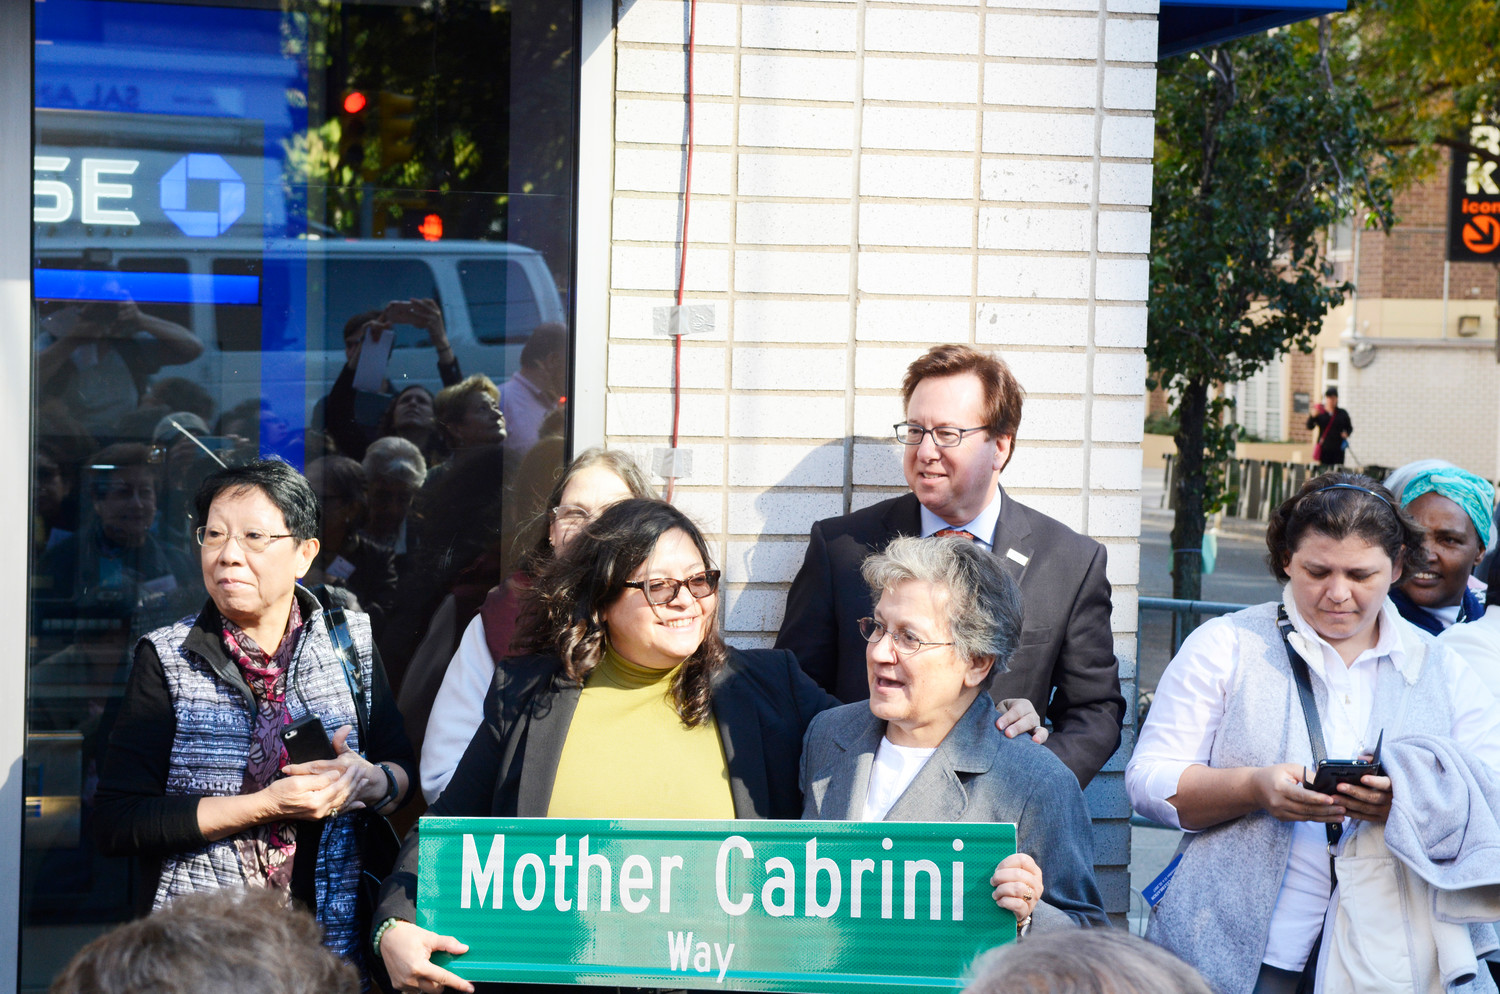 Participants included New York City Council Member Rosie Mendez, and Sister Pietrina Raccuglia, M.S.C., provincial of the Missionaries of the Sacred Heart of Jesus, the religious congregation founded by Mother Cabrini.